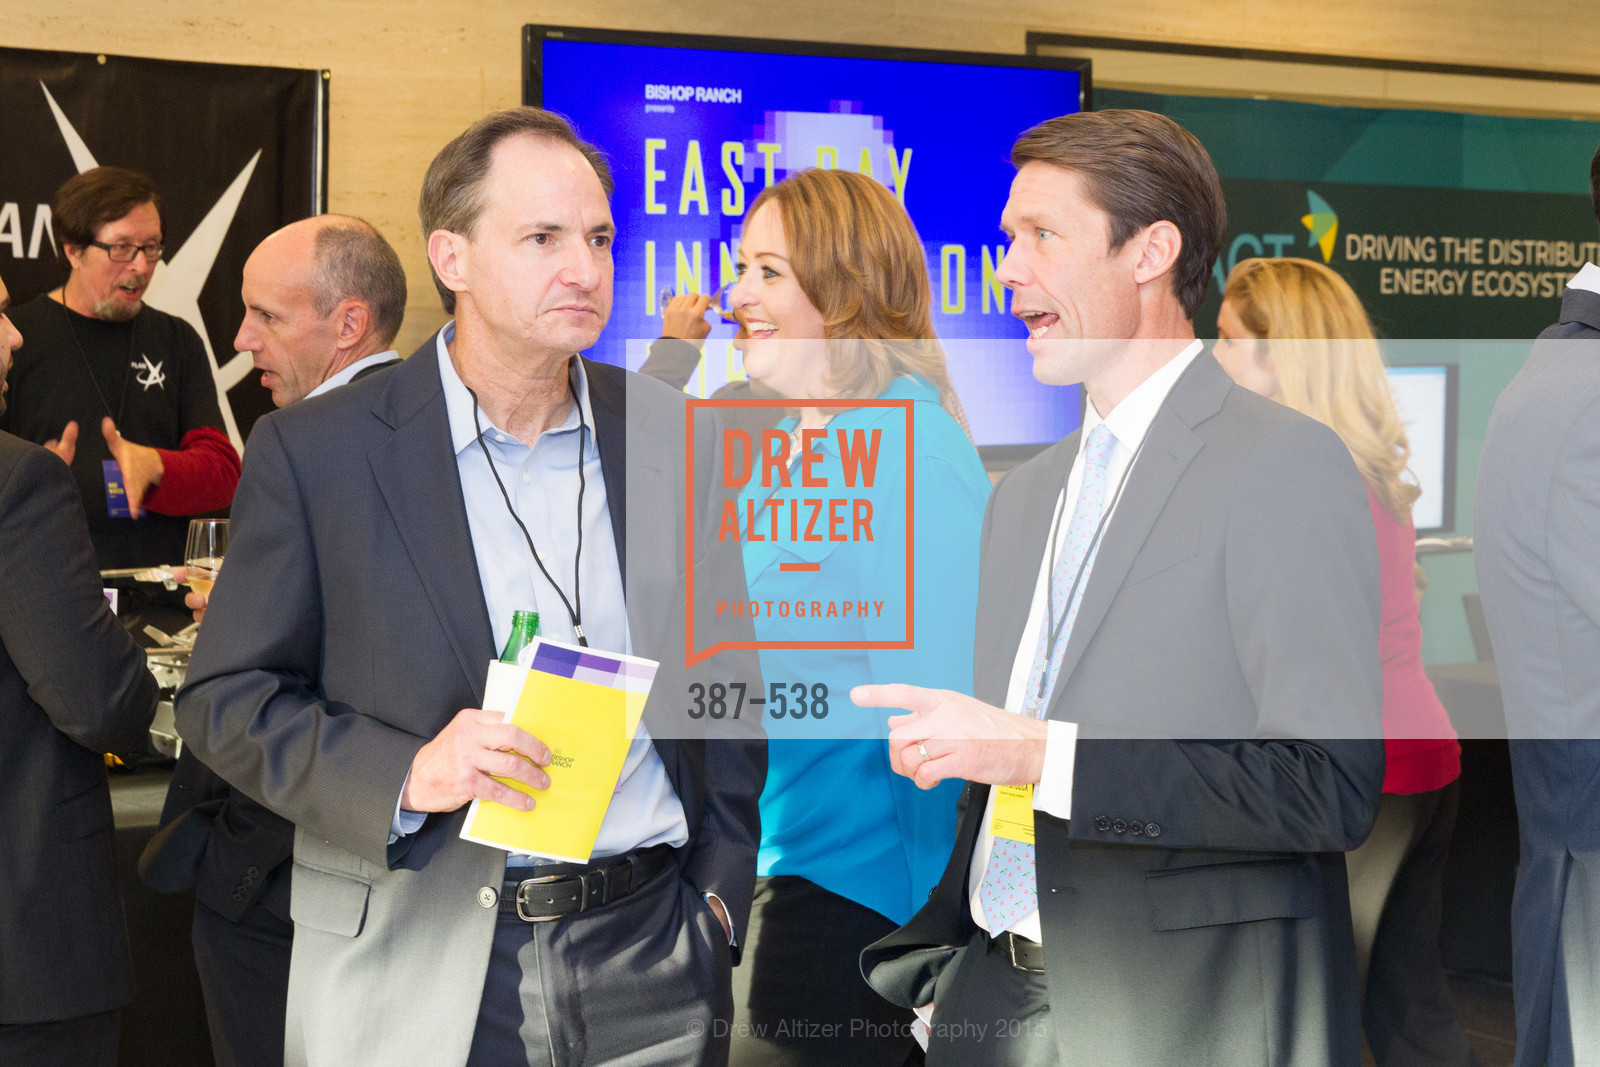 Extras, East Bay Innovation Forum, November 17th, 2015, Photo,Drew Altizer, Drew Altizer Photography, full-service agency, private events, San Francisco photographer, photographer california